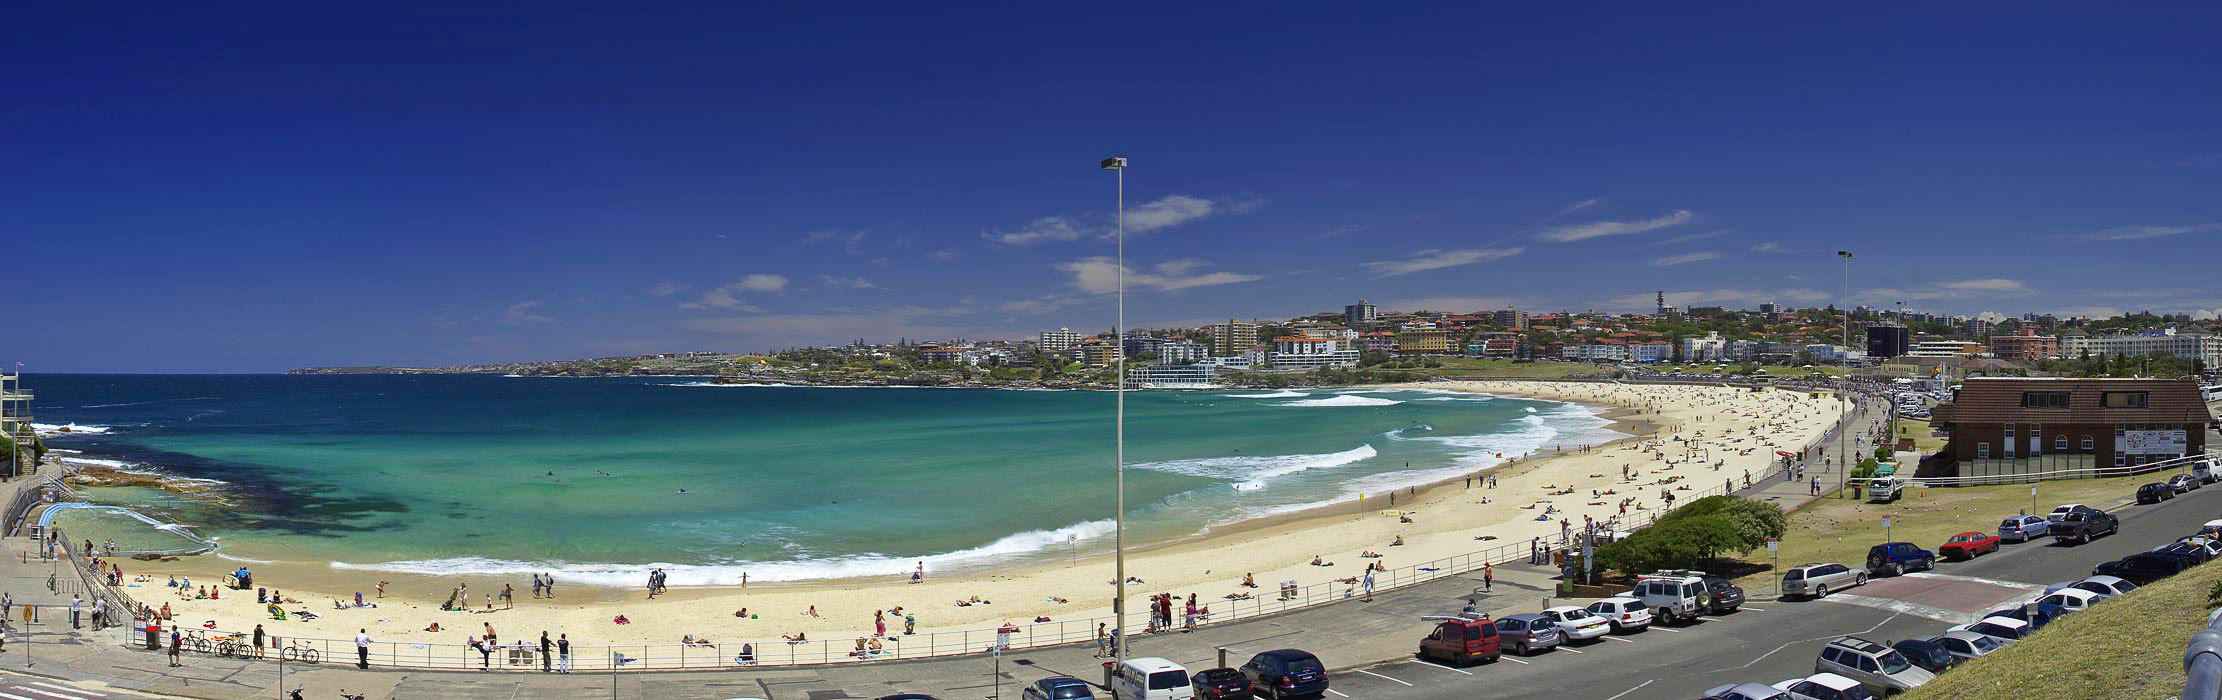 "Bondi Beach, Friday December 22nd 2006.  To view at full size please click <a href=""http://sydneywebcam.smugmug.com/photos/popup.mg?ImageID=118235649&Size=Original&popUp=1"" target=""_blank""><strong><em>here</em></strong>.</a>"